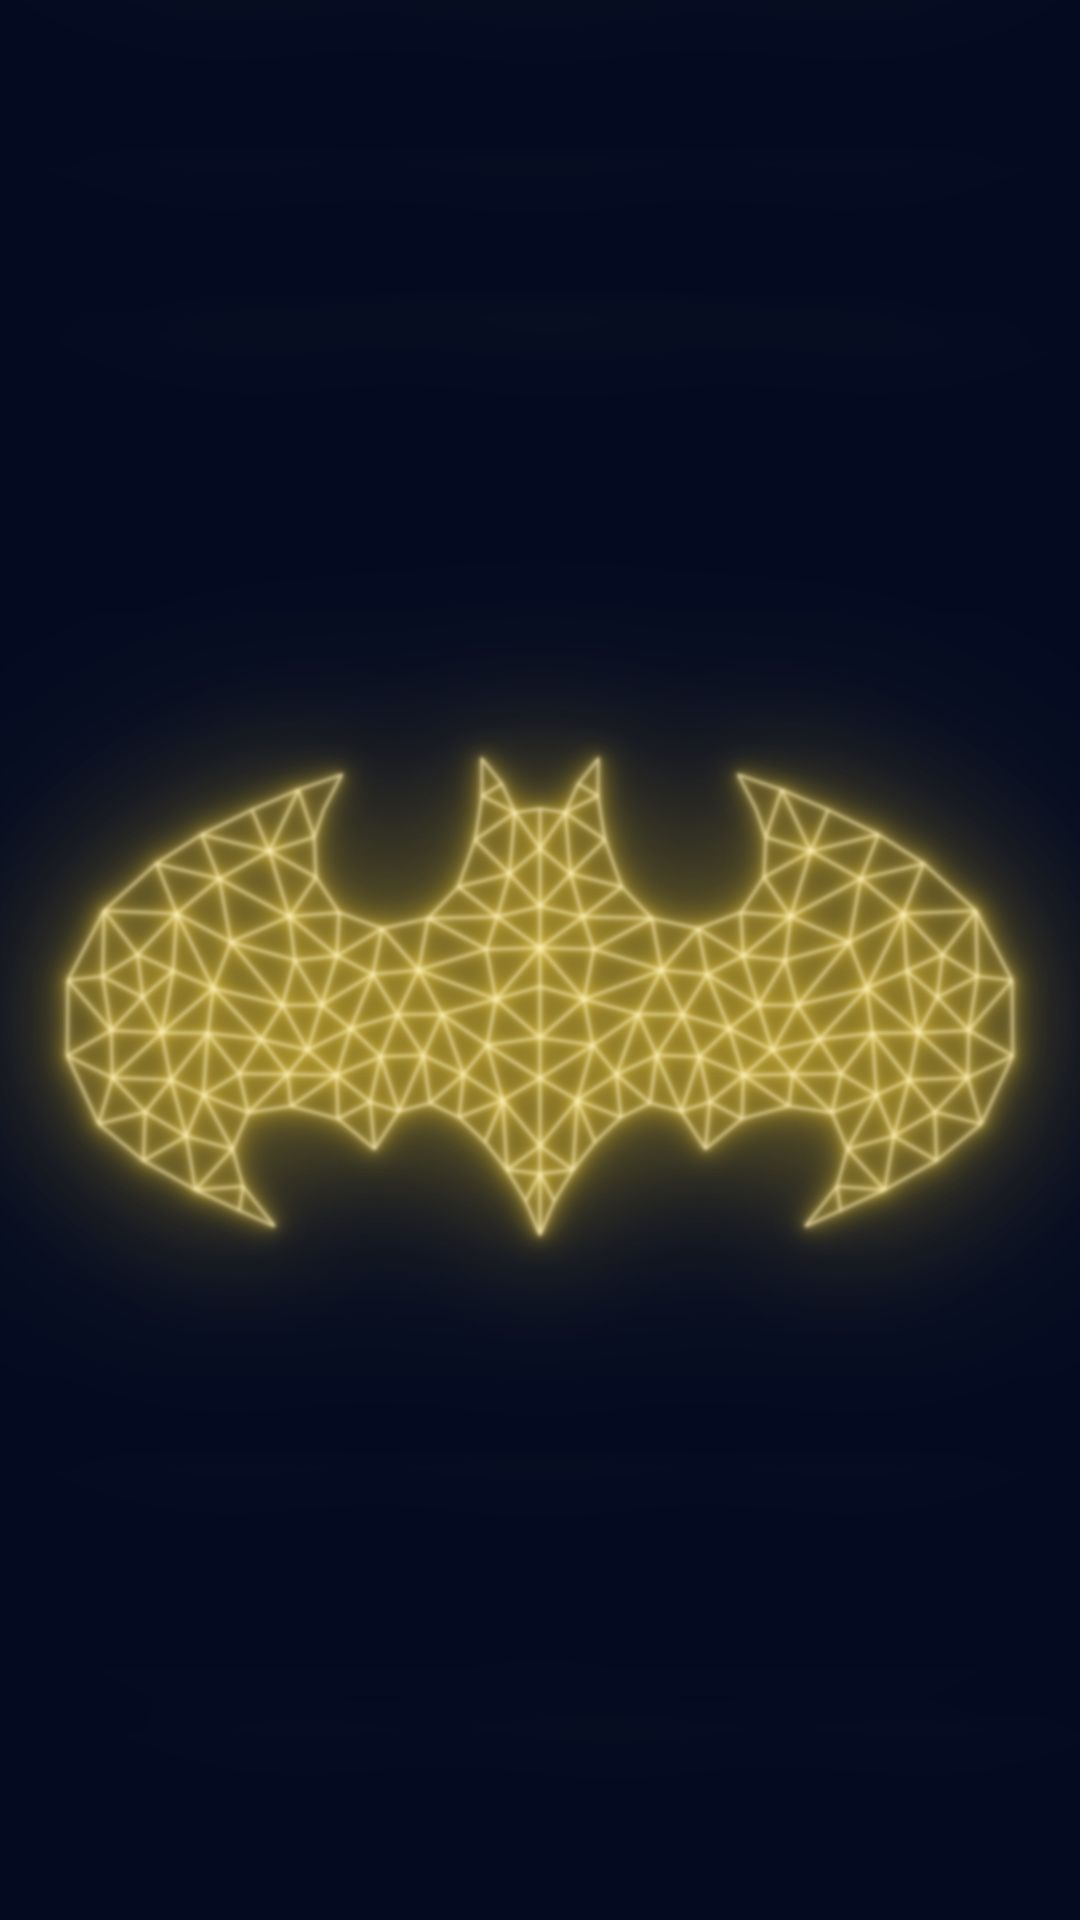 Batman Logo Shining Minimal Art Wallpaper Batman Logo Marshmello Logo 61864 Hd Wallpaper Backgrounds Download Marshmello, the anonymous producer/dj is taking the music industry by. wallpaper batman logo marshmello logo